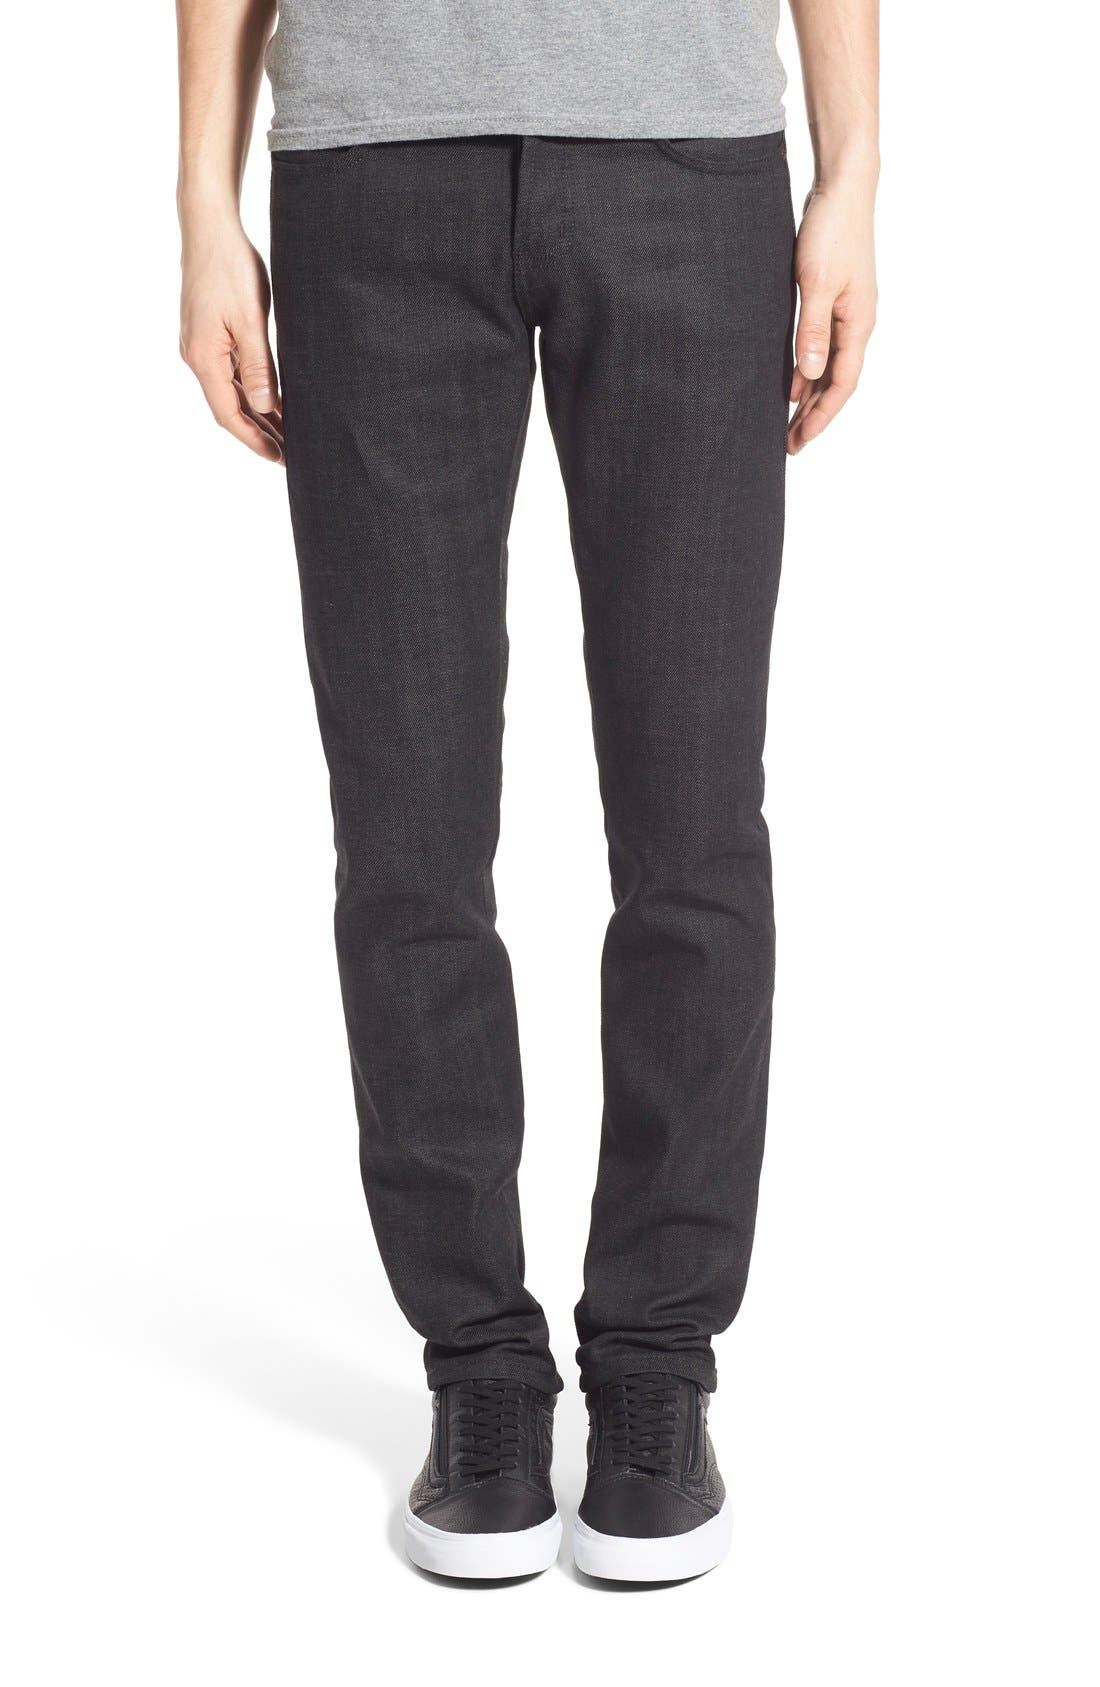 Naked & Famous Super Skinny Guy Skinny Fit Stretch Jeans (Black x Grey Selvedge)